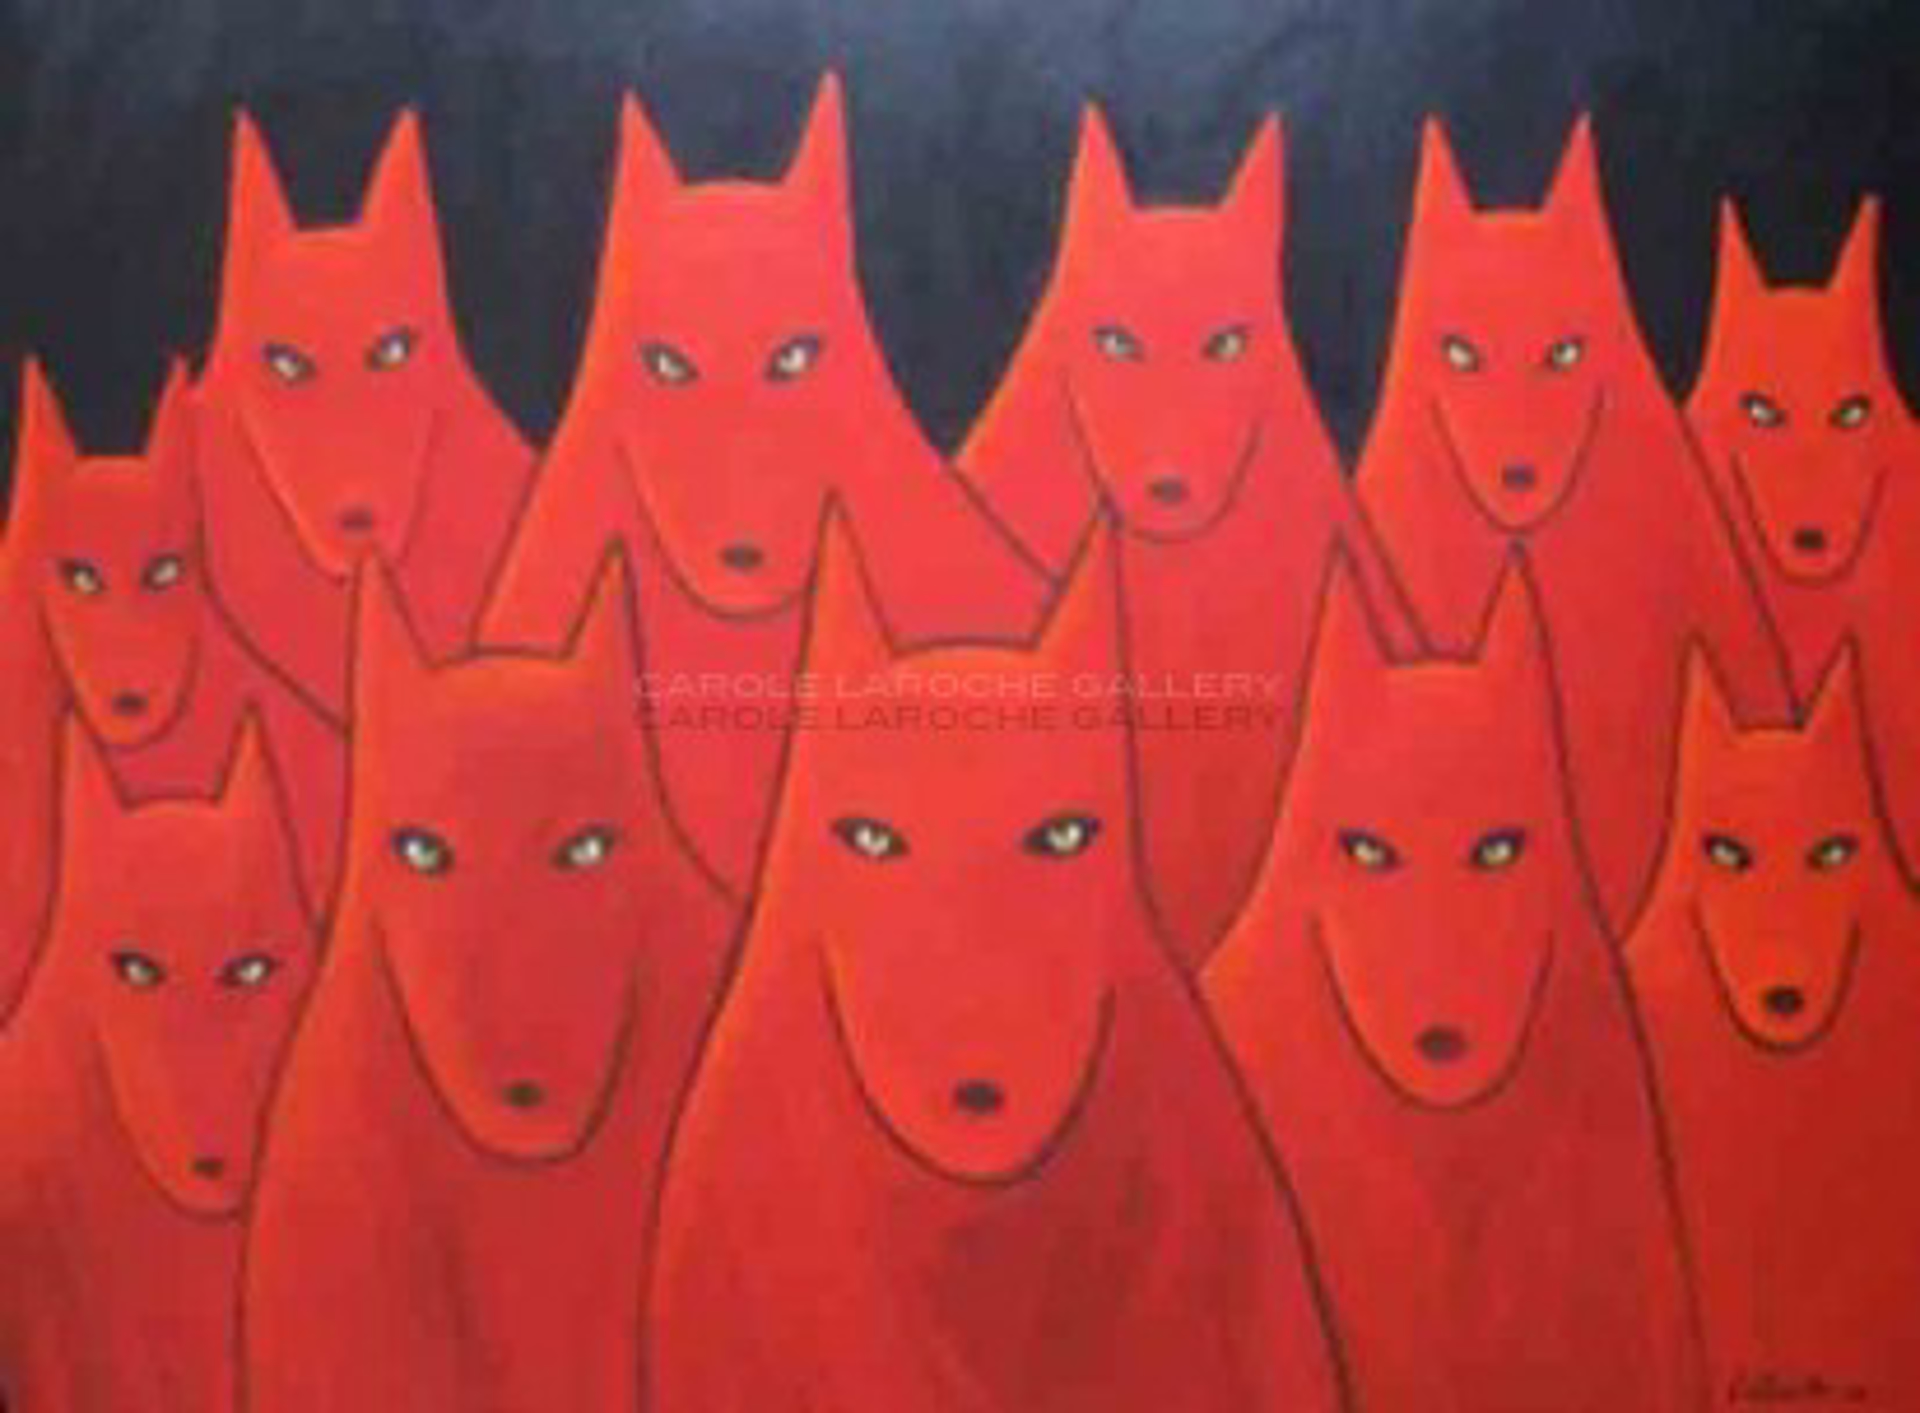 "THE GATHERING - limited edition giclee on canvas: (large) 54""x72"" $5000 or (medium) 30""x40"" $2200 by Carole LaRoche"